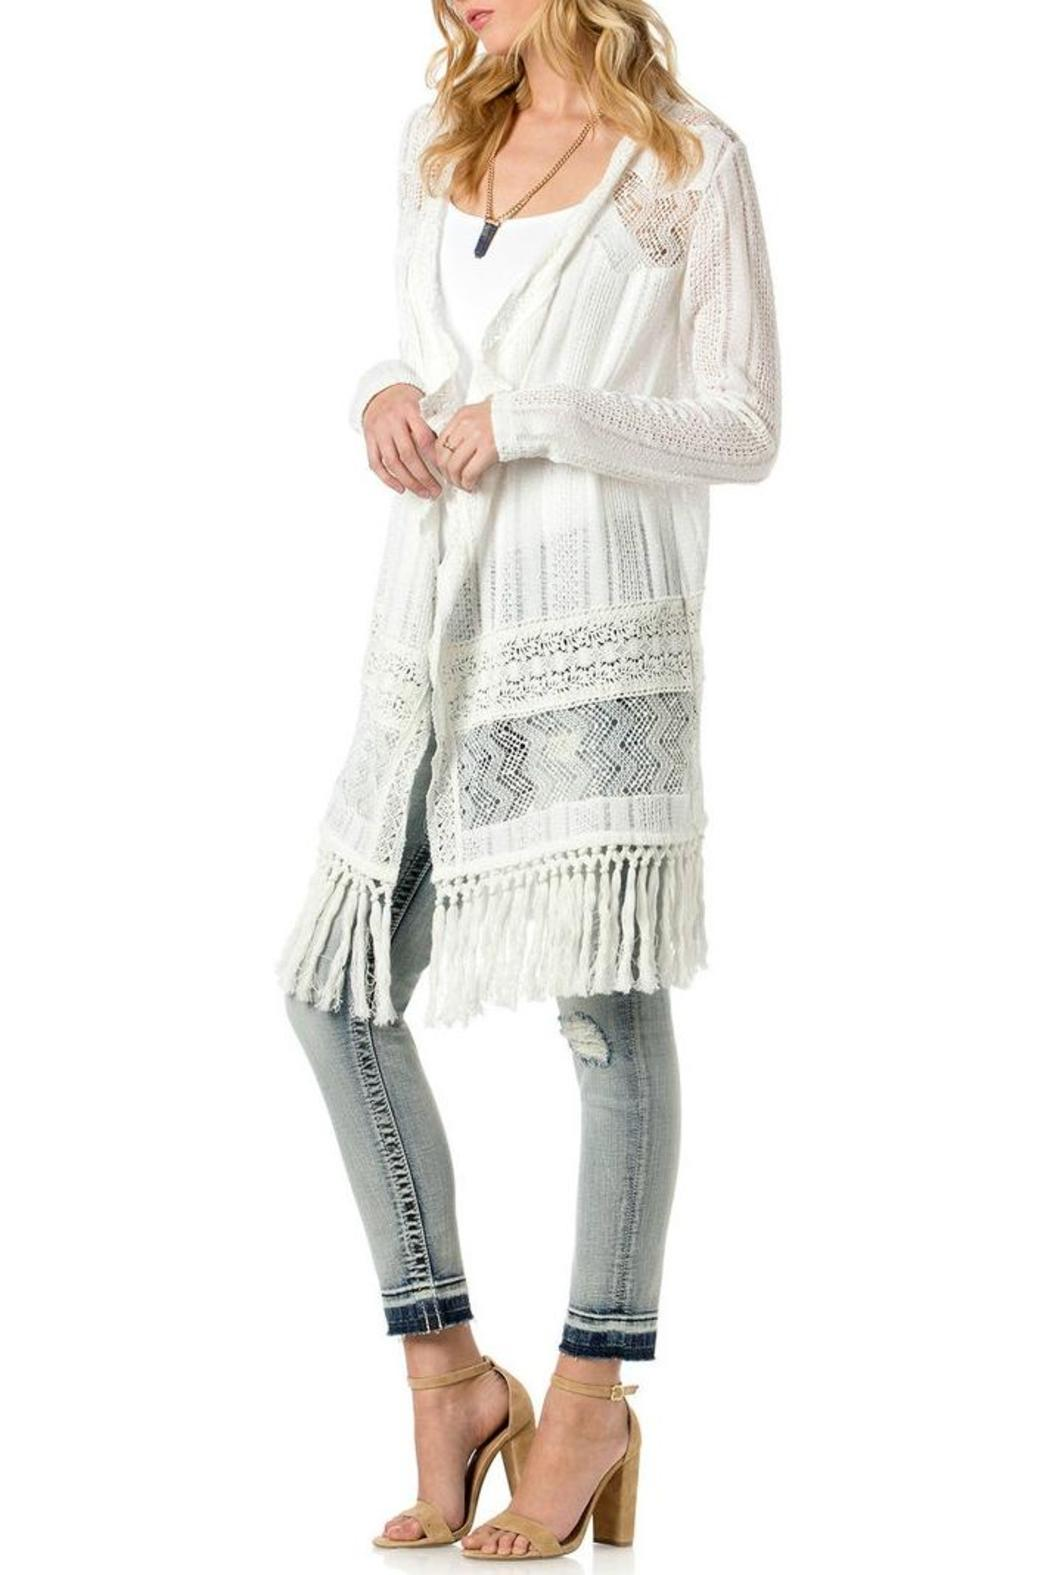 Miss Me White Fringe Cardigan - Back Cropped Image - Miss Me White Fringe Cardigan From North Shore By Assets Jean Co